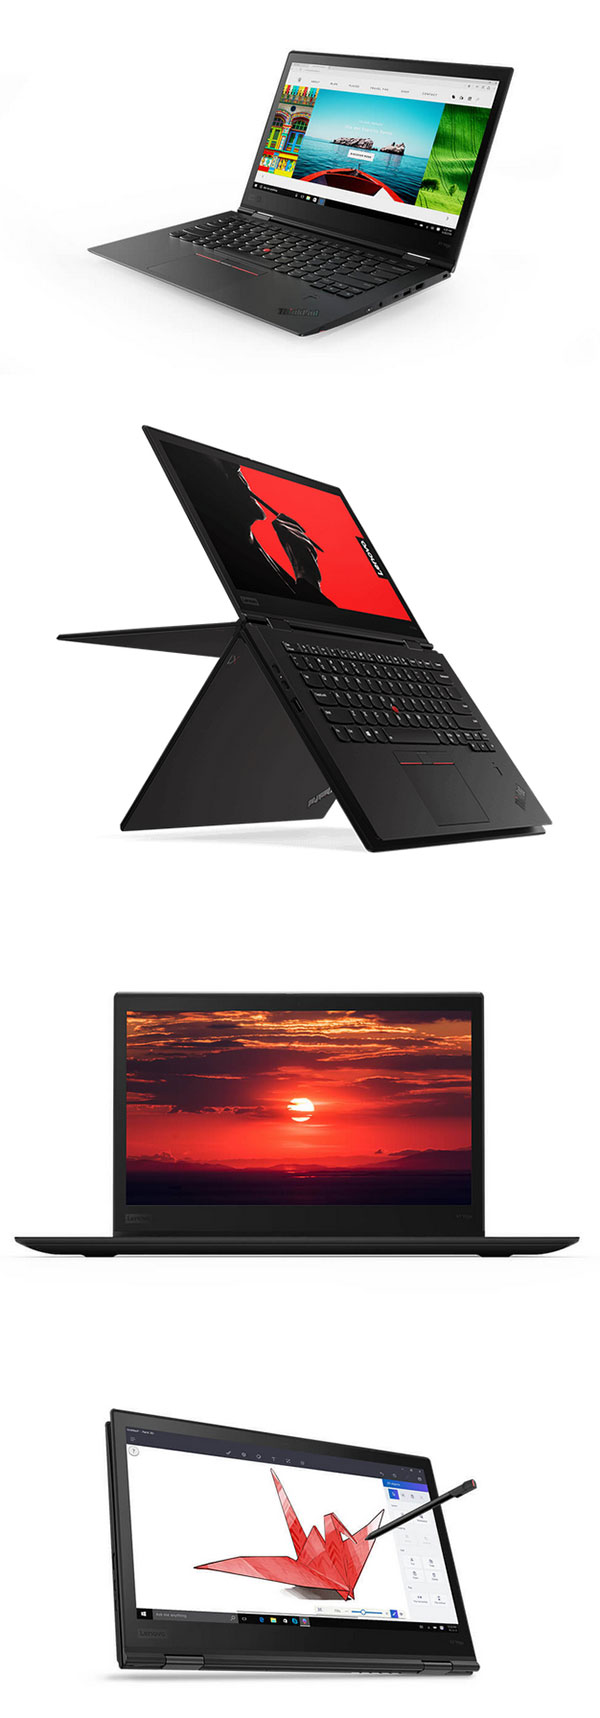 2018年型ThinkPad X1 Yoga